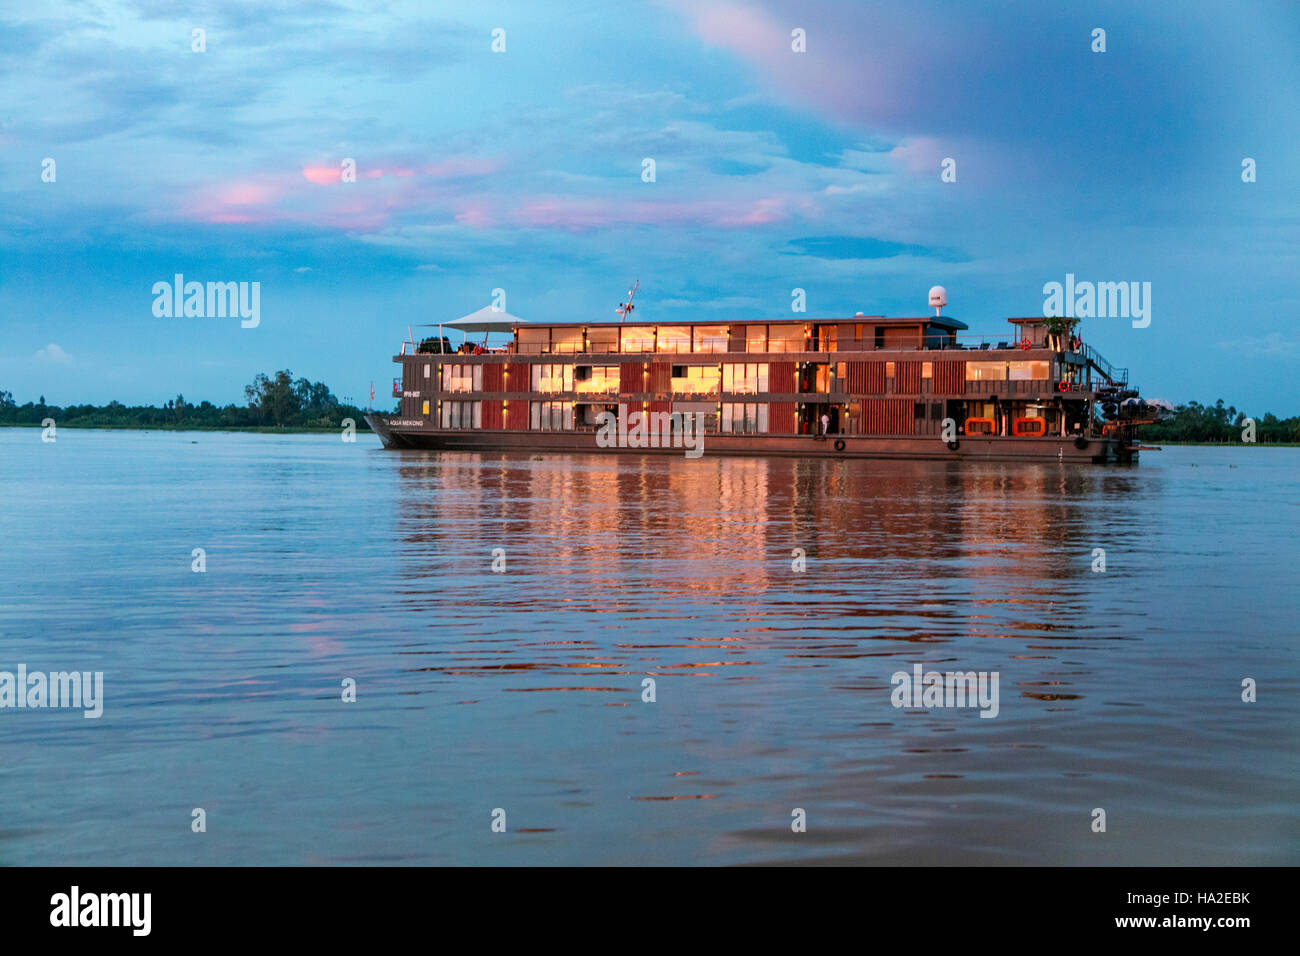 Aqua Expeditions, Mekong River, Cruise, Vietnam, Asia - Stock Image